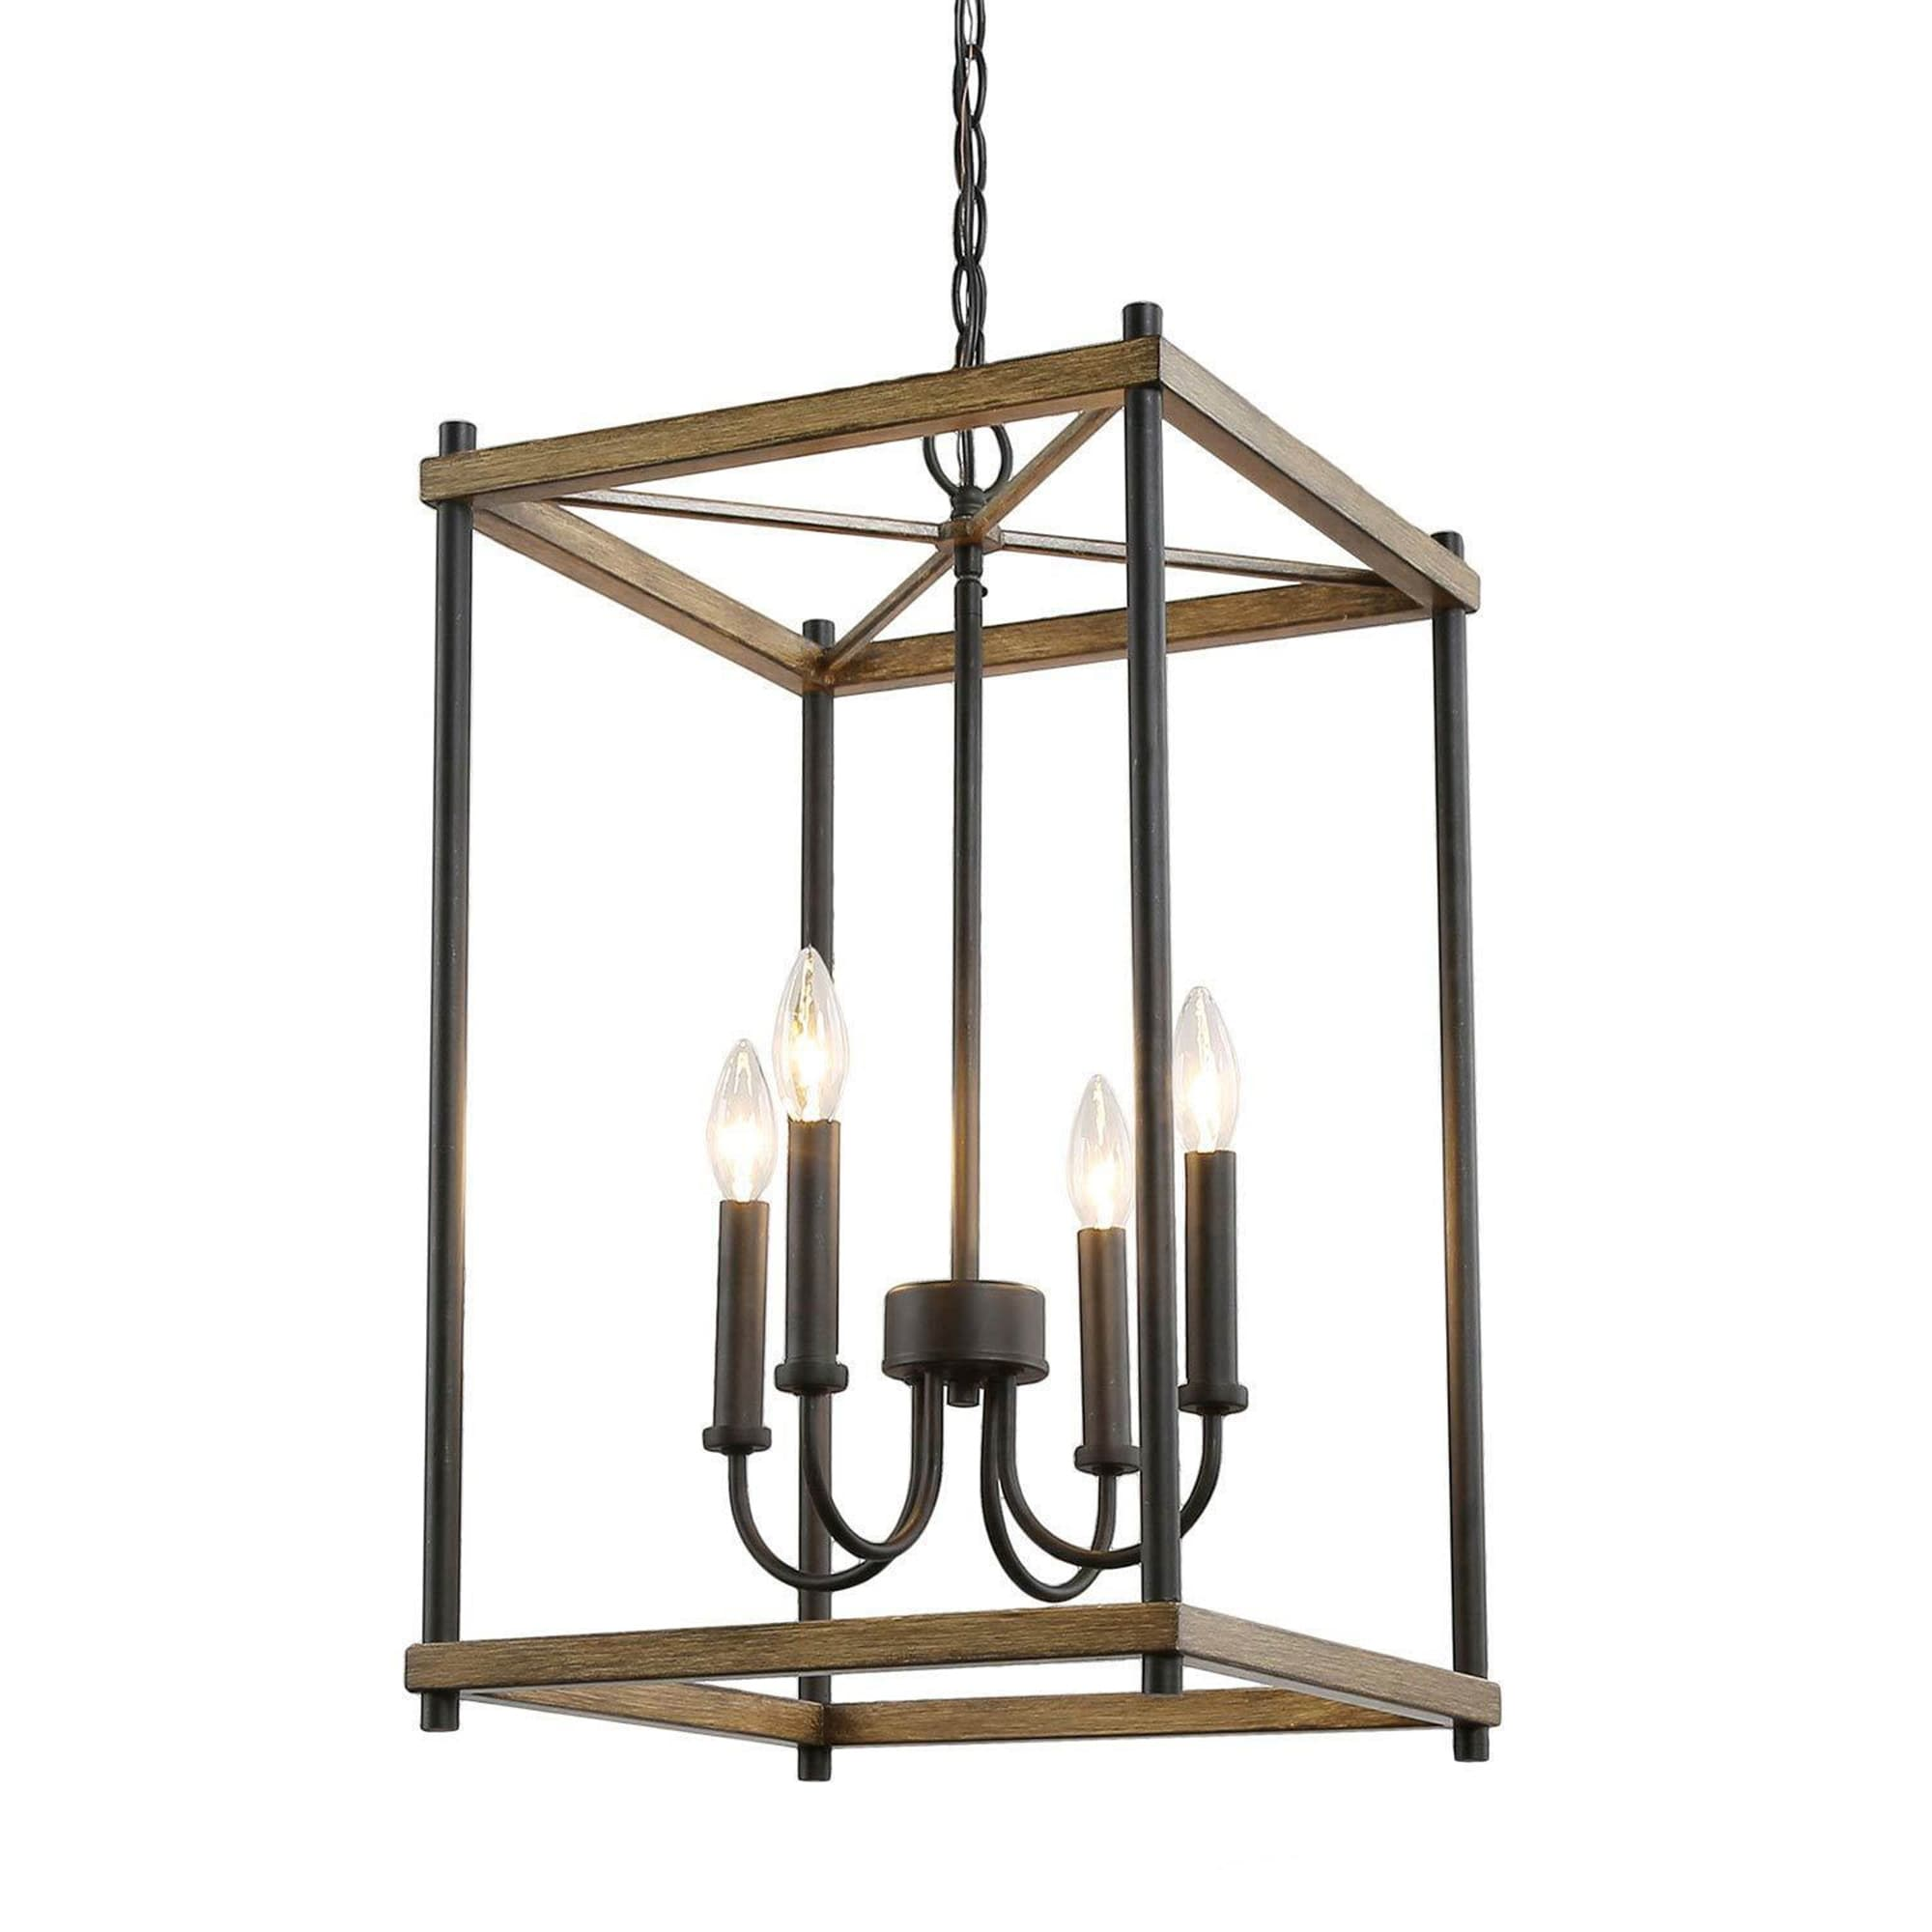 Modern Farmhouse 4 Lights Lantern Candle Chandelier Faux Wood Pendant Kitchen Island Lighting For Dining Room Overstock 30722022